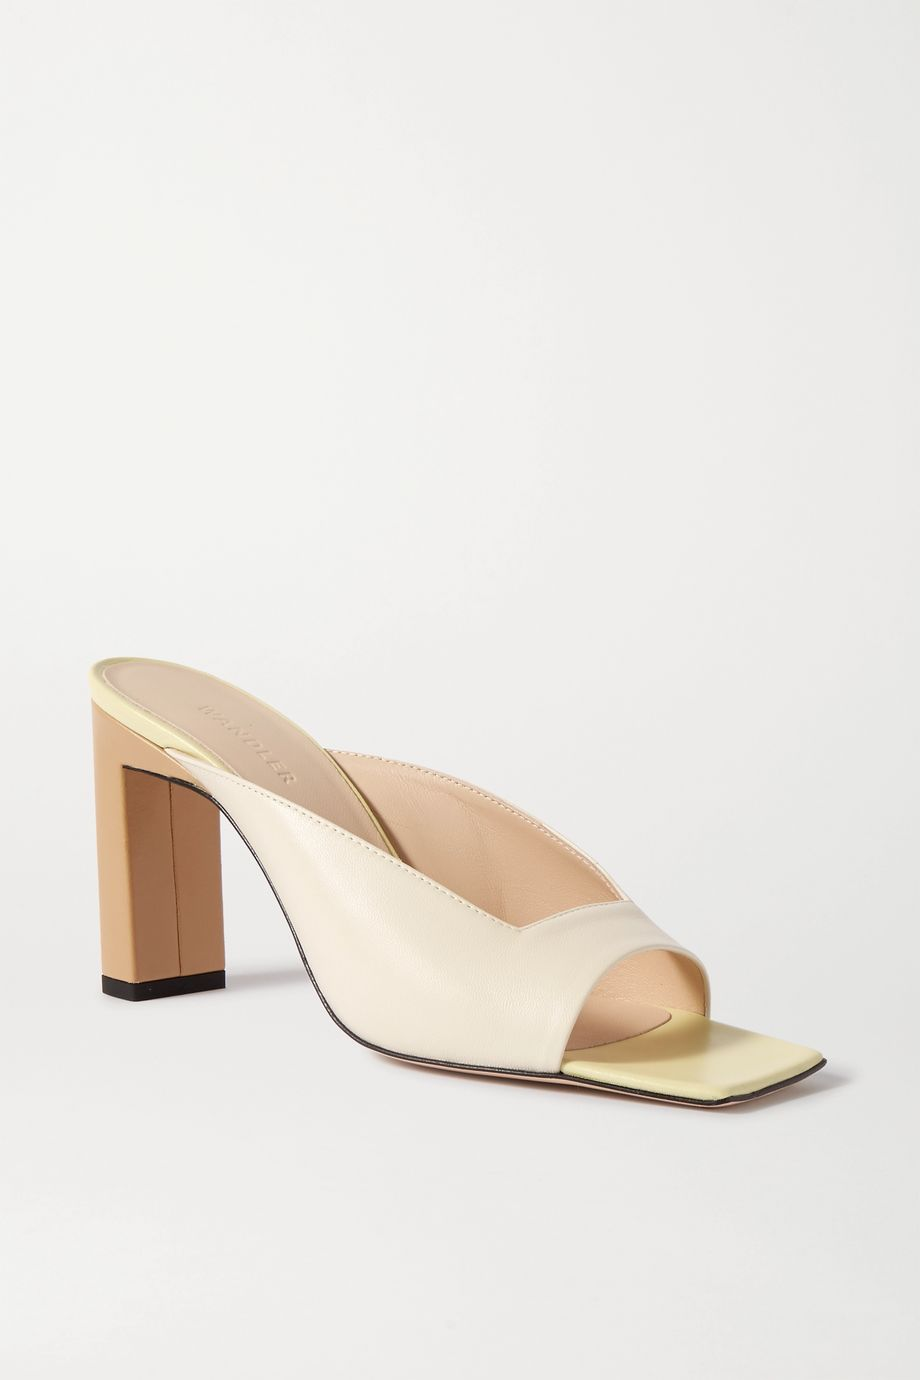 Wandler Isa color-block leather mules